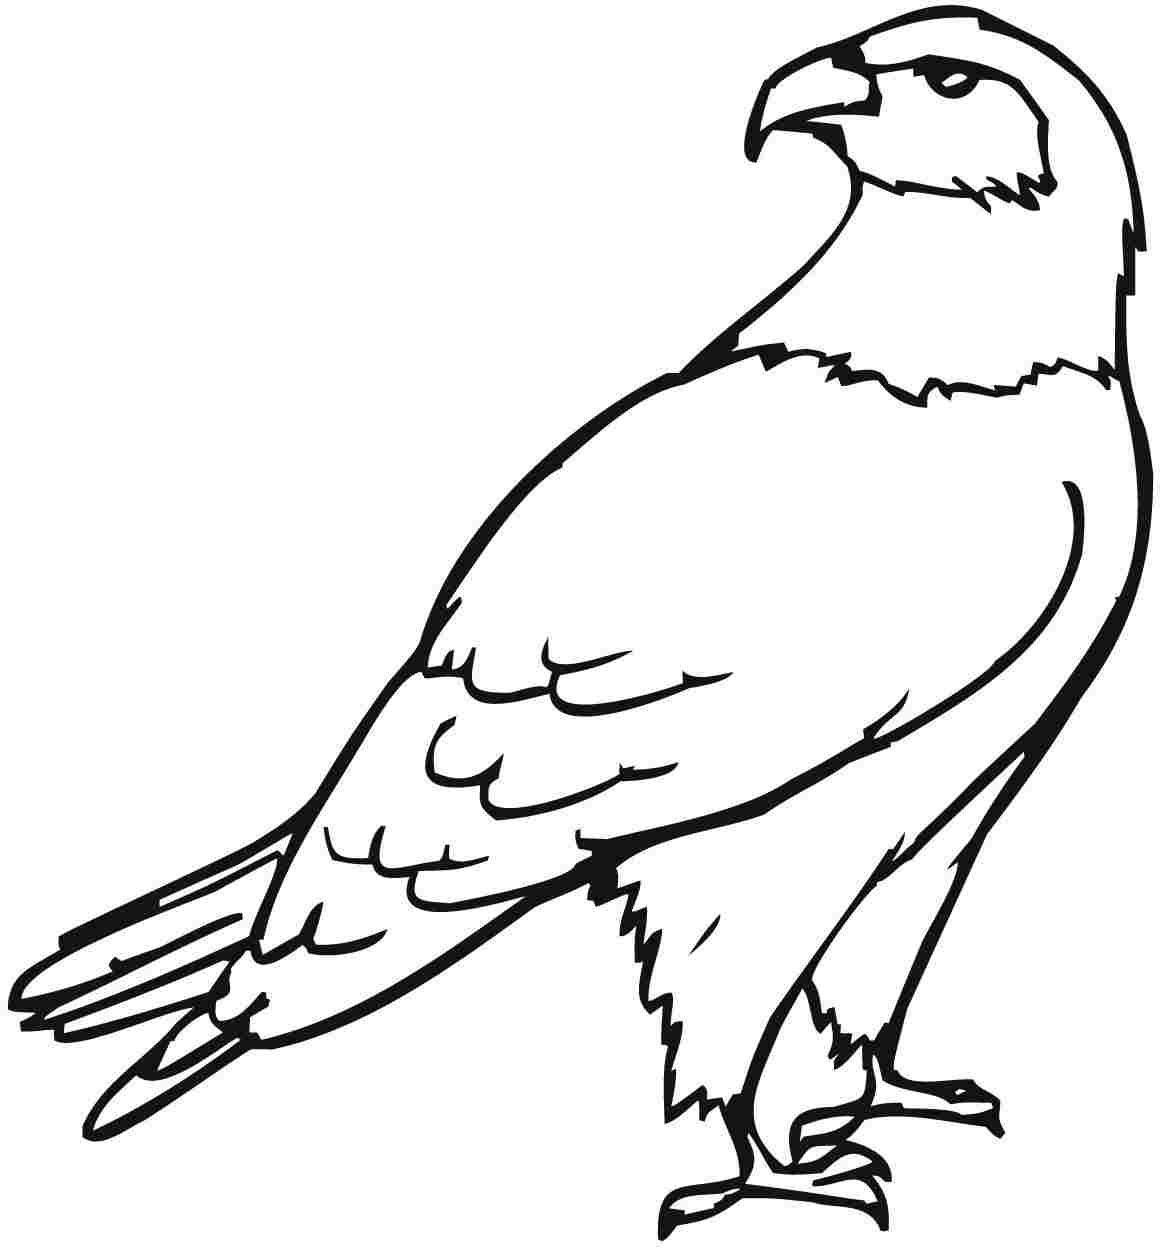 Printable Eagle Coloring Pages | Eagle Coloring Pages | Pinterest ...